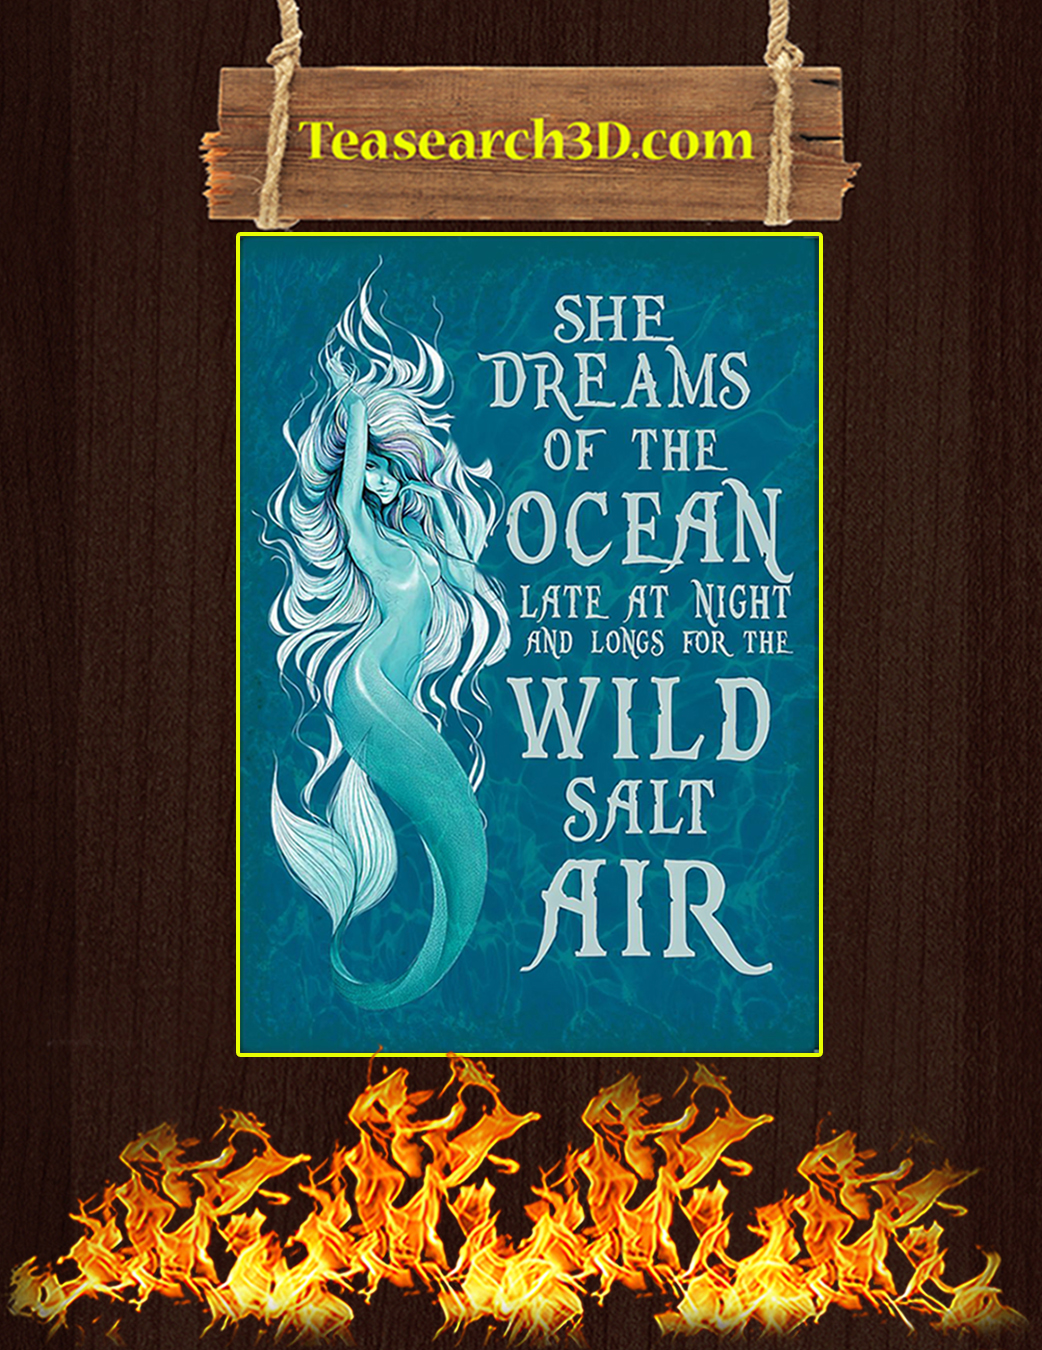 She dreams of the ocean late at night and longs for the wild salt air poster A1